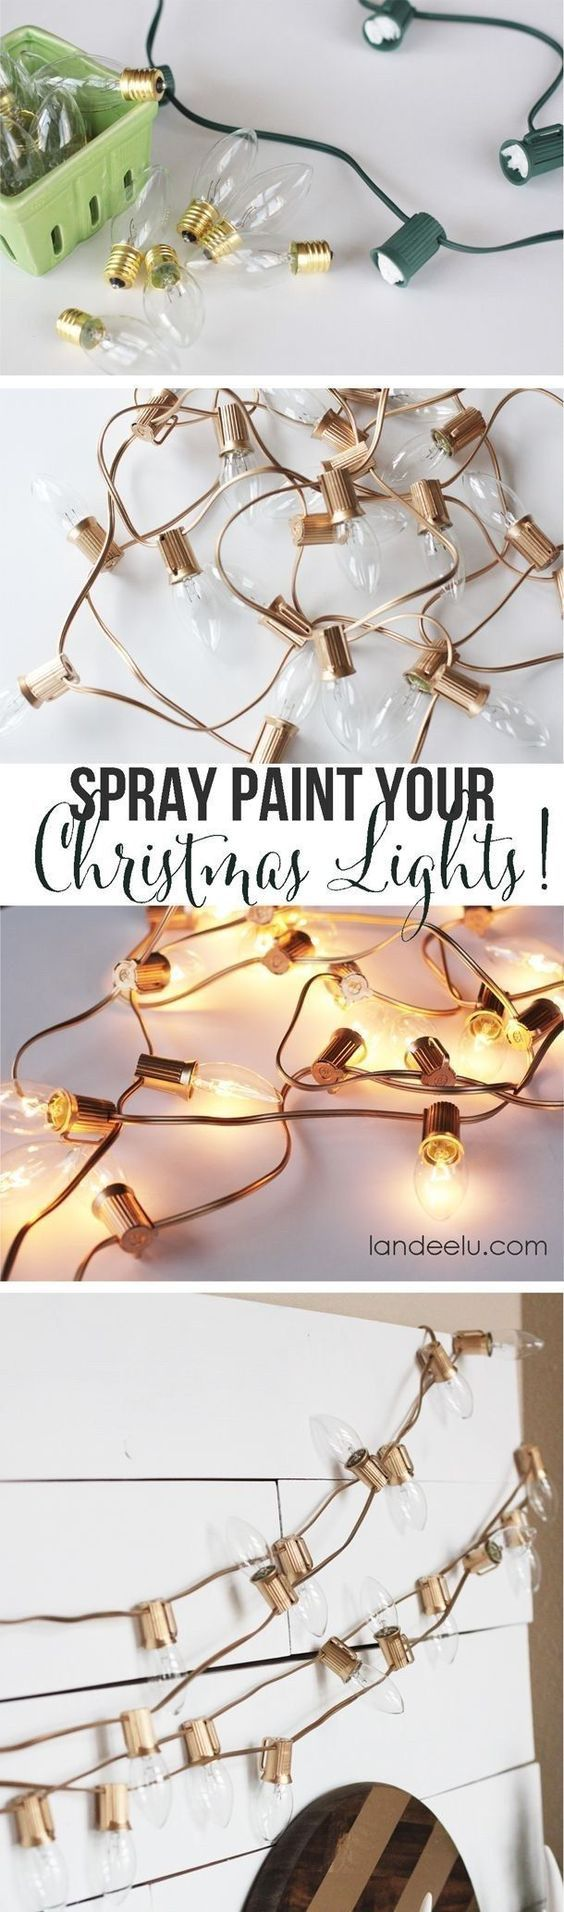 Apartment Decorating When You Can T Paint best 20+ apartment string lights ideas on pinterest | bedroom